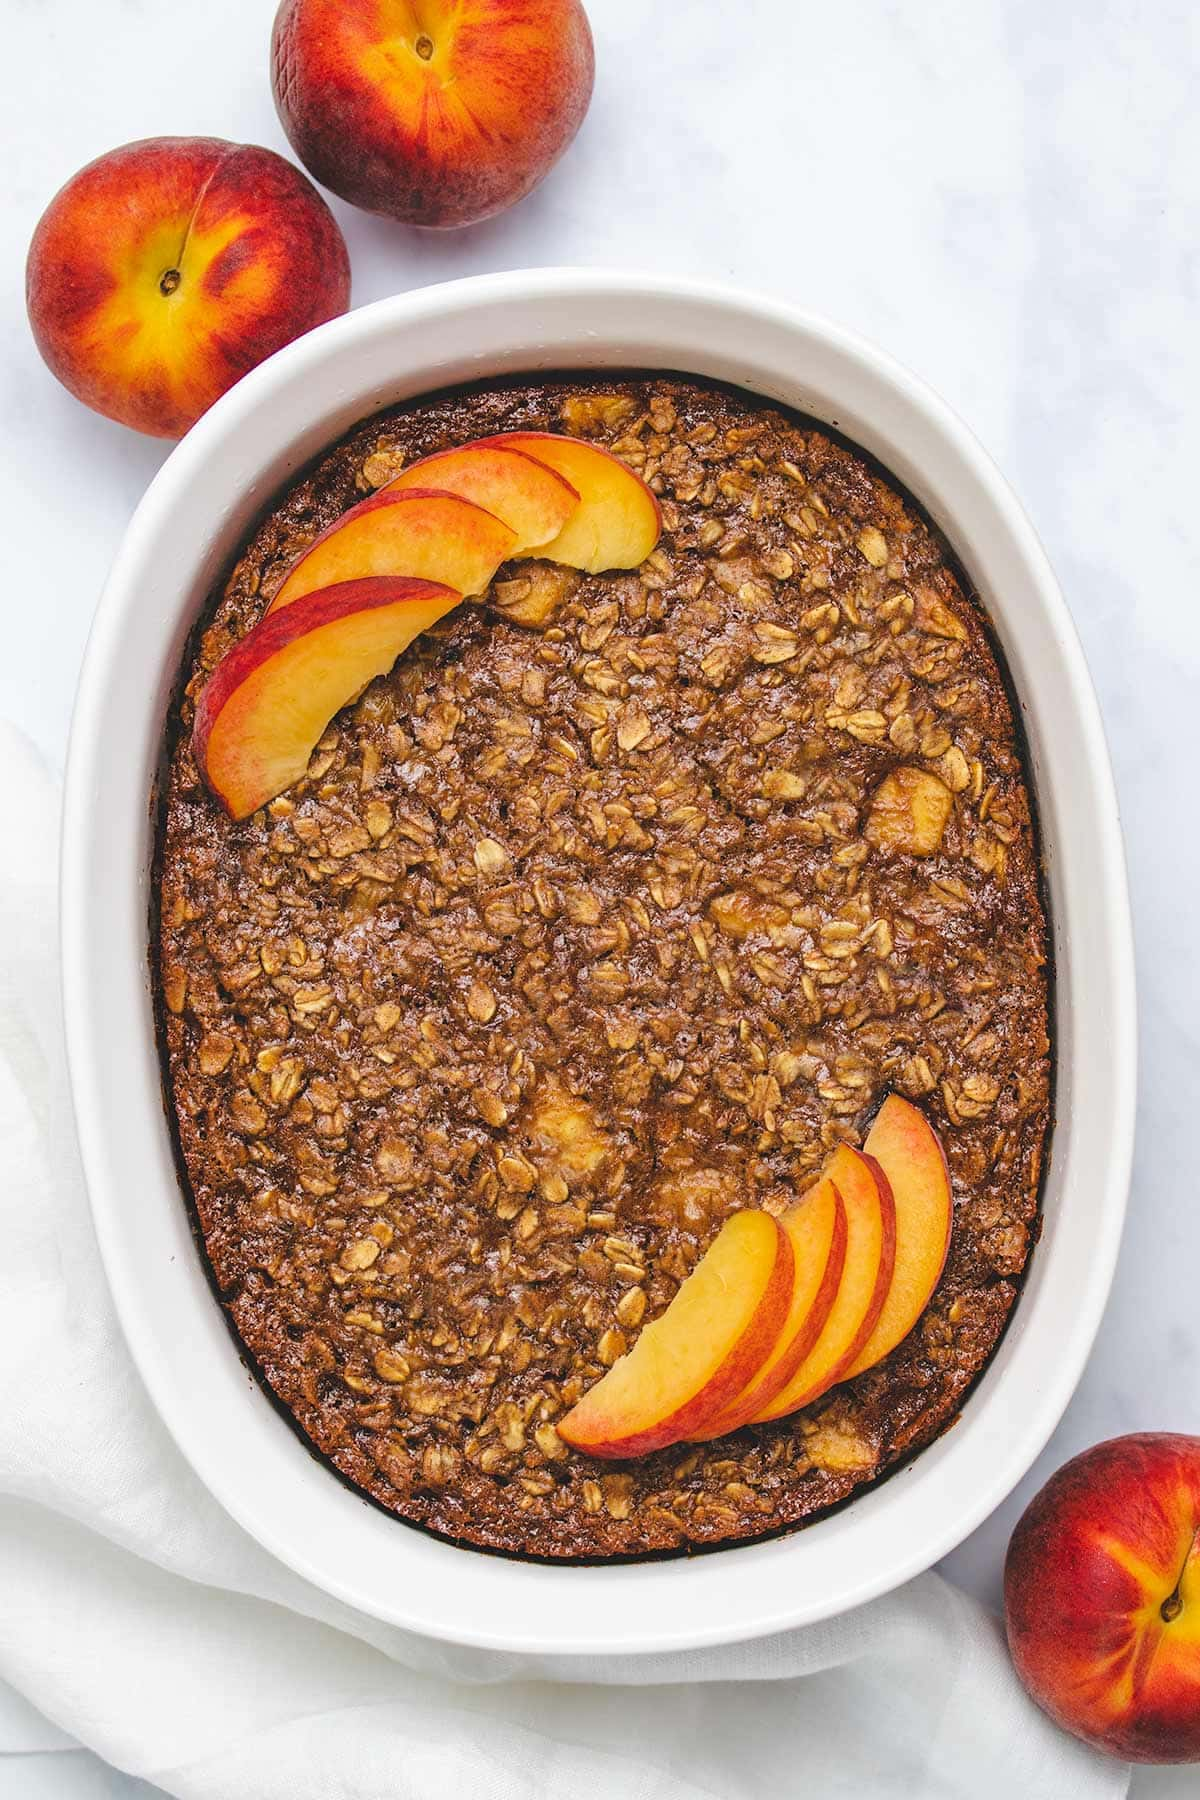 Vegan Peach Baked Oatmeal in a white casserole dish next to a white linen and 3 peaches